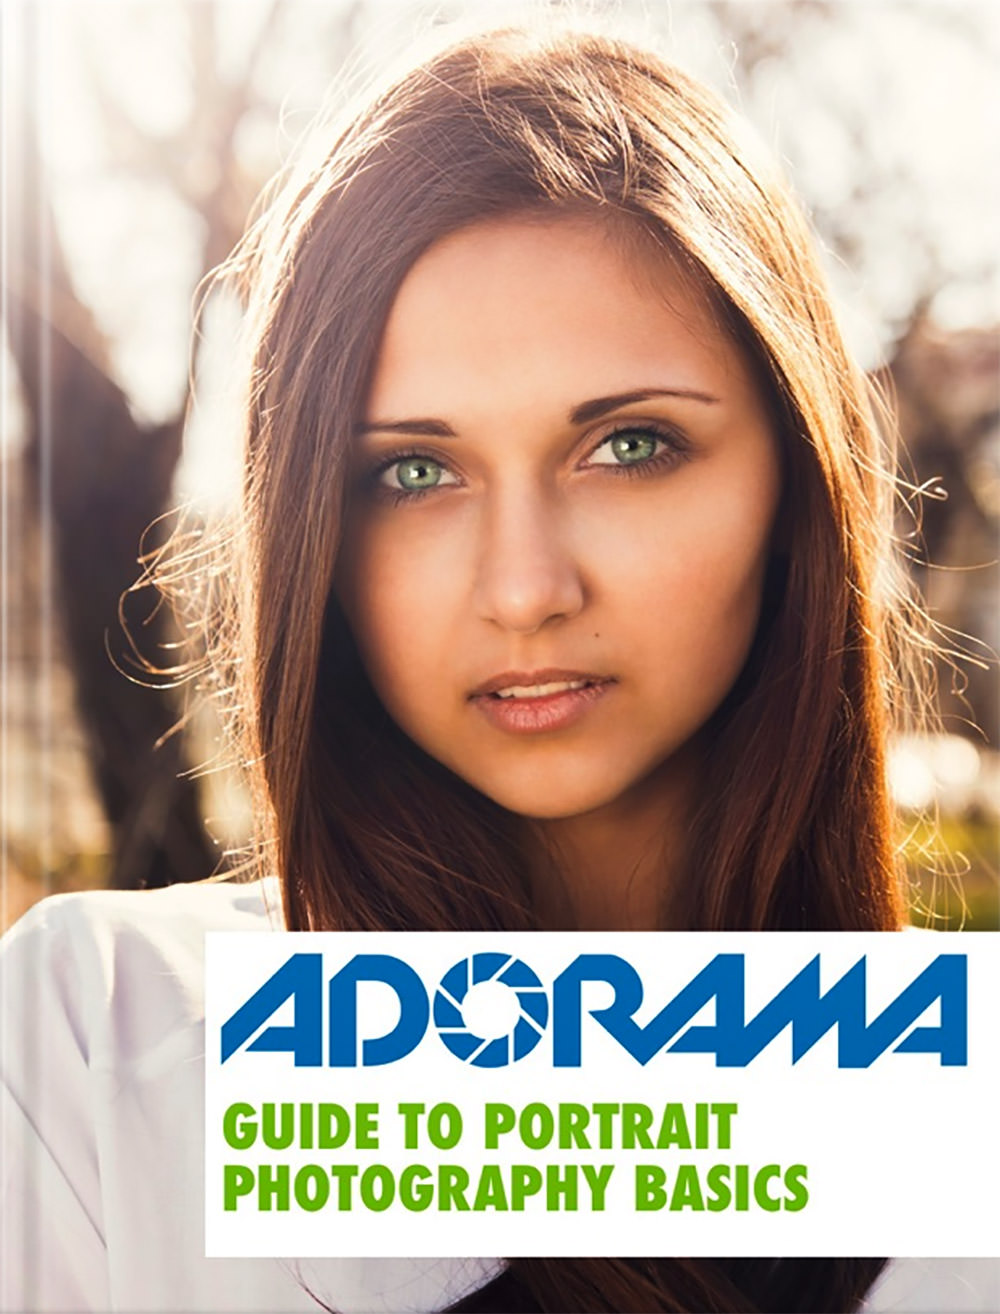 Guide-To-Portrait-Photography-Basics